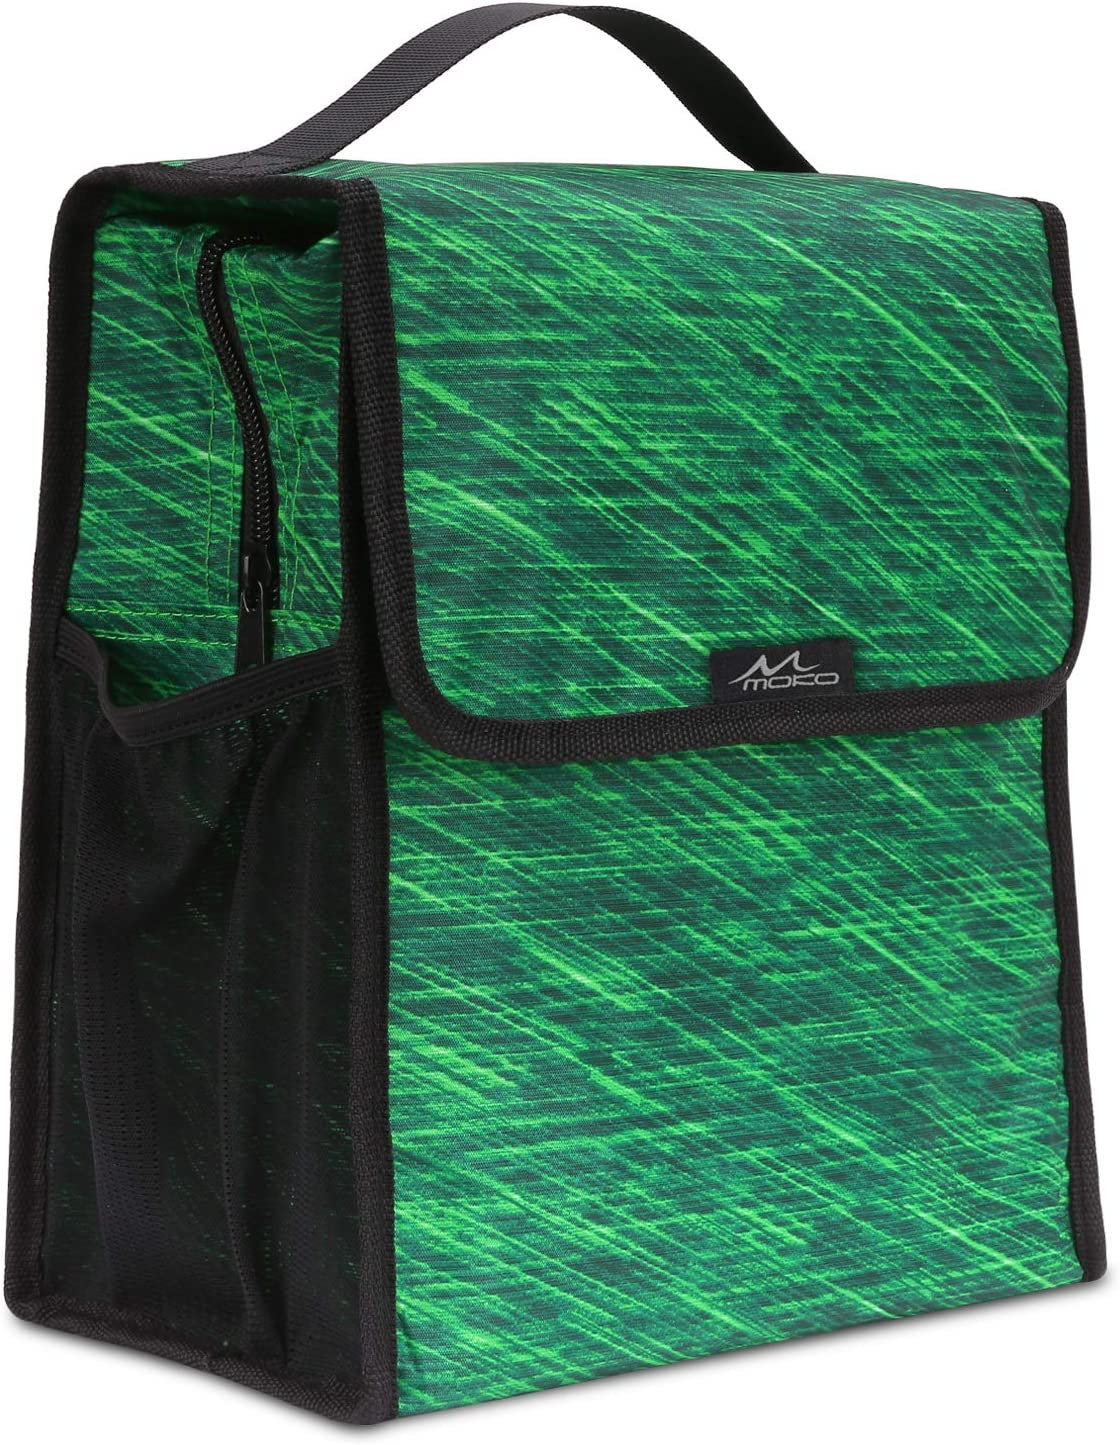 MoKo Insulated Lunch Bag, Reusable Cooler Tote Bag, Collapsible Multi-use Lunch Box, Thermal Lunch Sack with Zipper Closure for Travel Picnic School Office, Forest Green